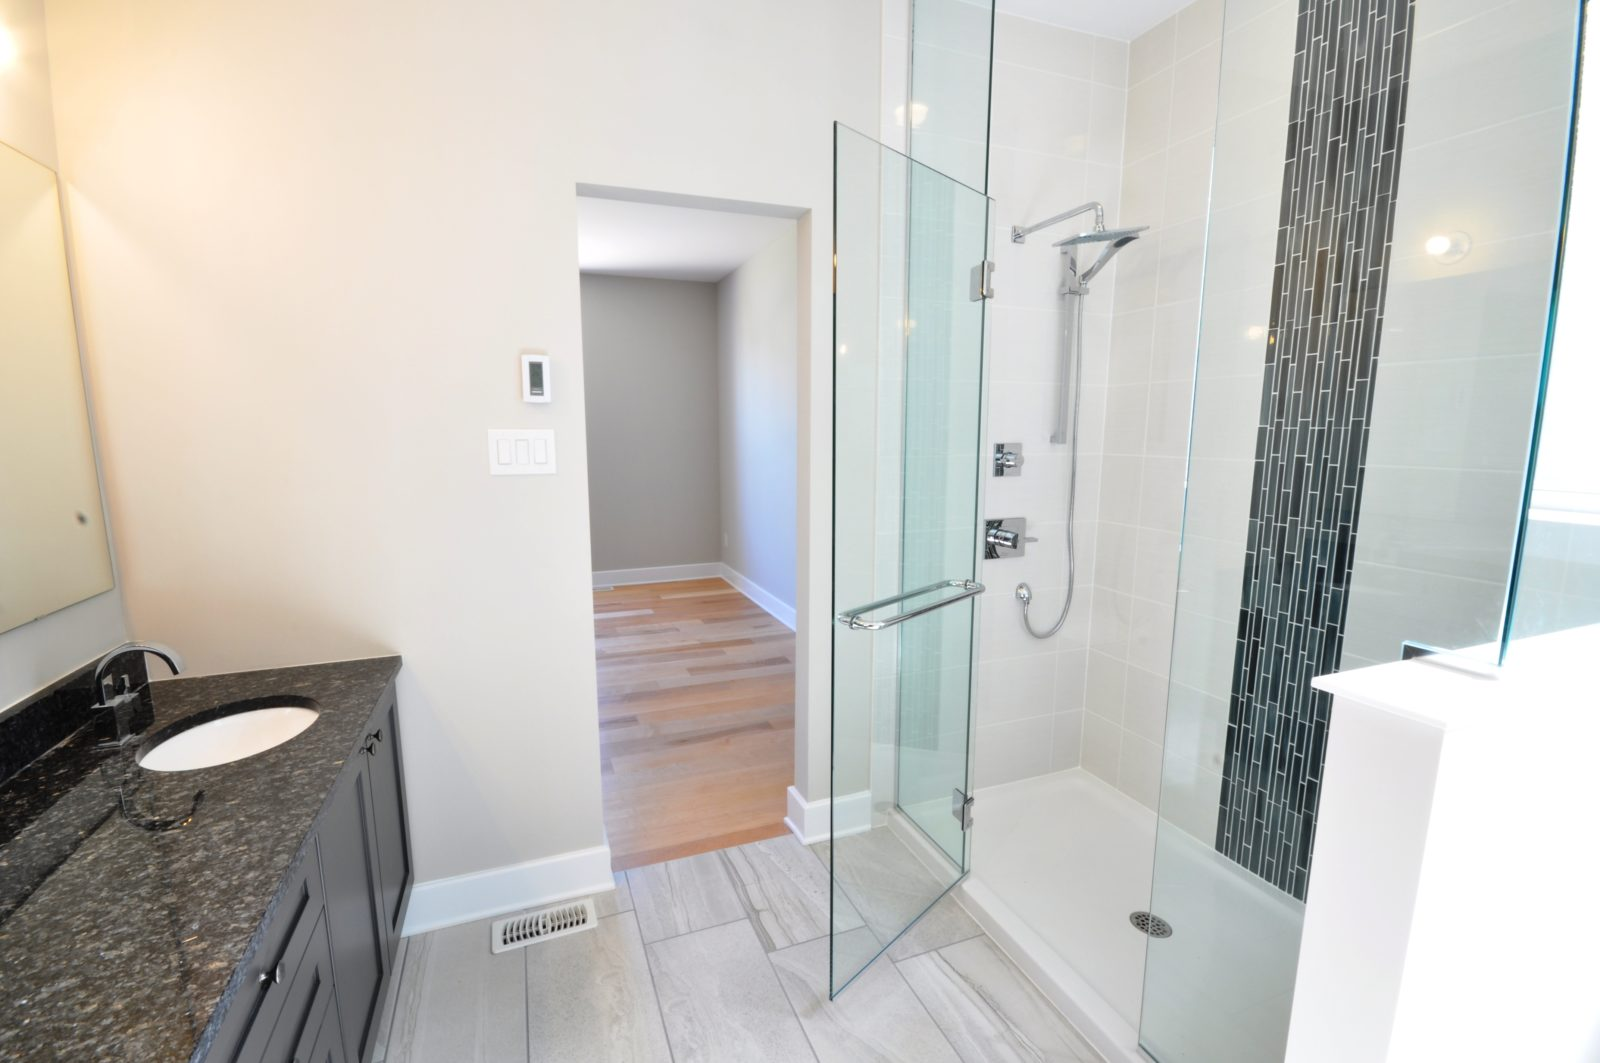 Bathroom Rosemere by Phoenix Homes